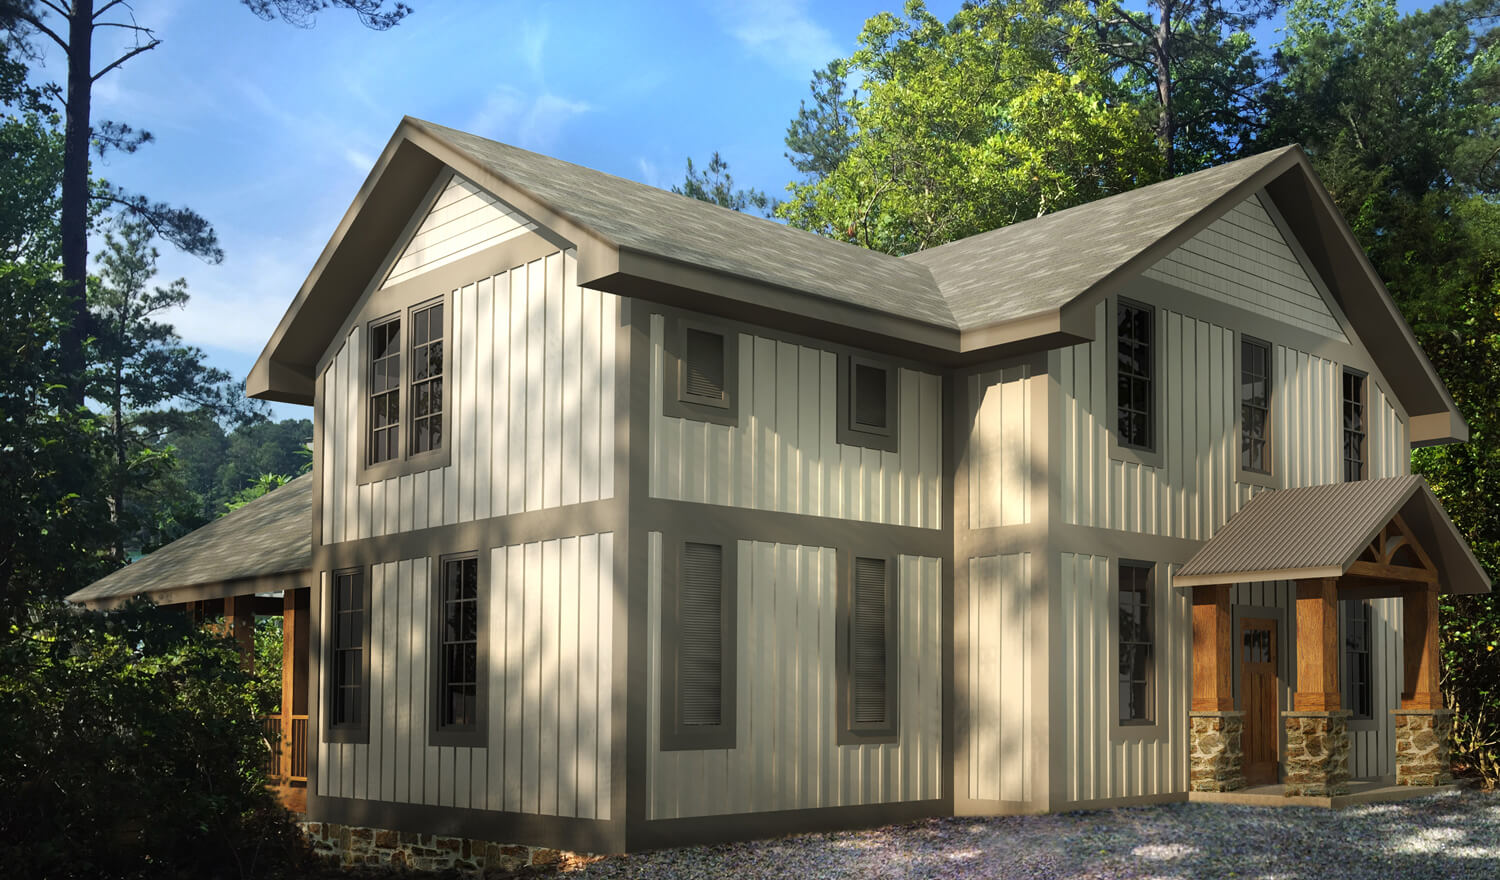 Designed by Foshee Architecture – Lake House 2 Rear Perspective